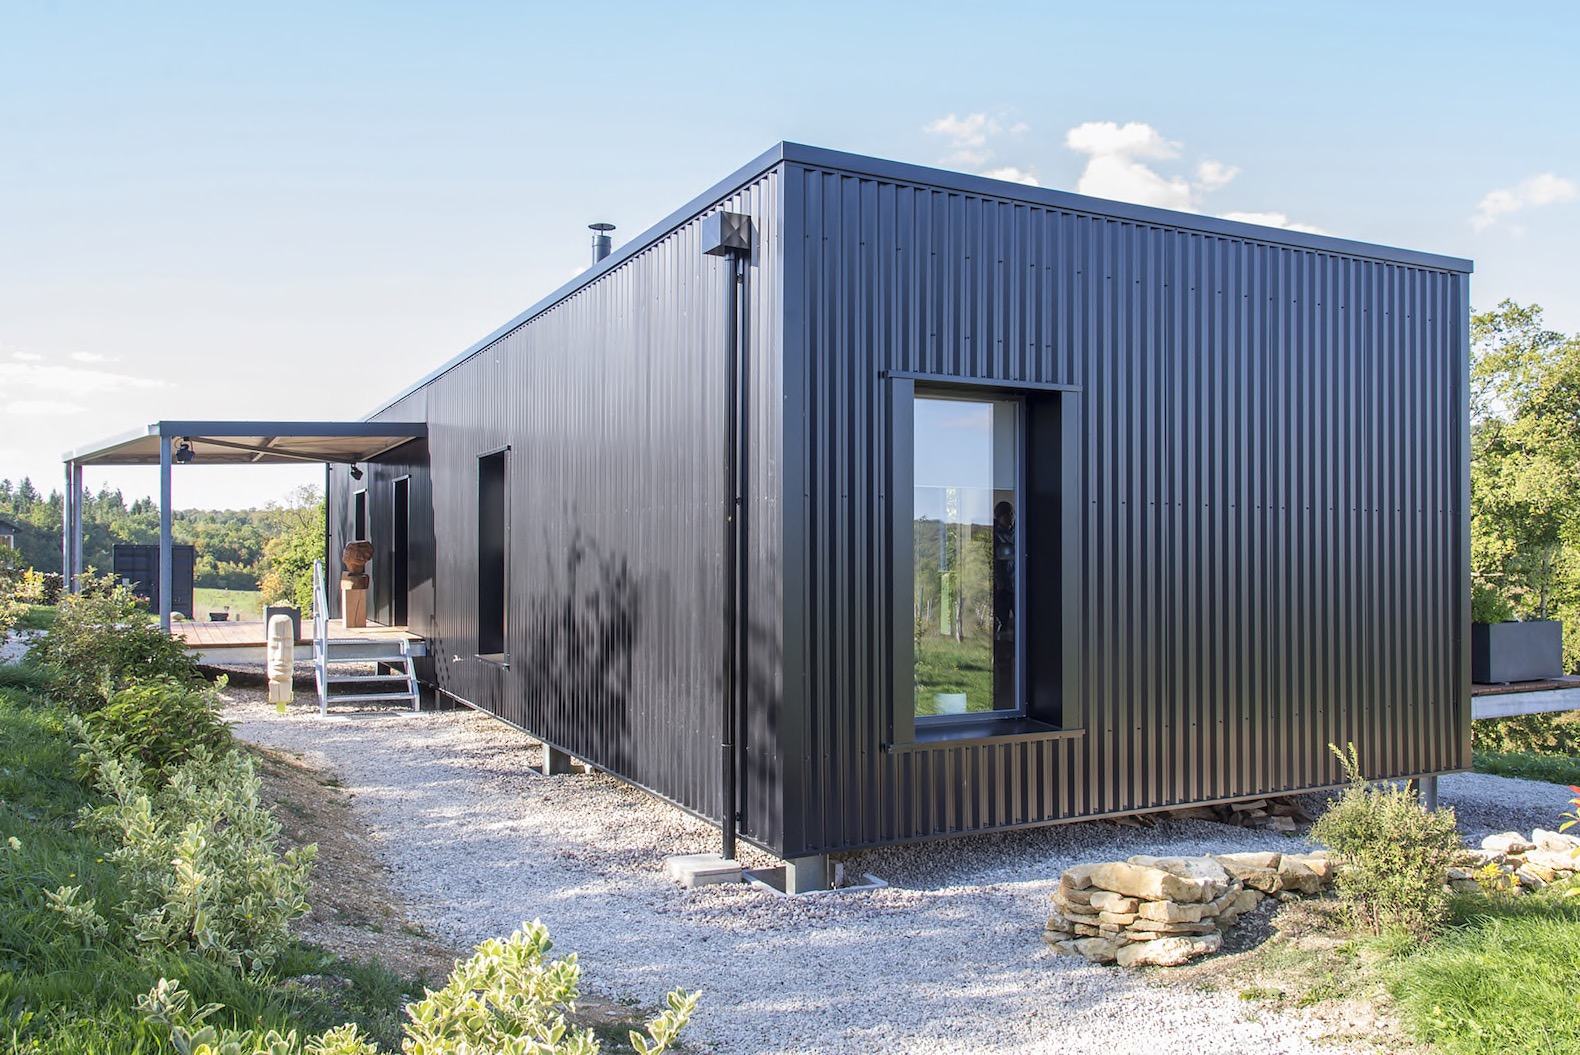 Best Kitchen Gallery: Light Filled Shipping Container Home Is An Artistic Triumph In The of Shipping Container Living Quarters on rachelxblog.com